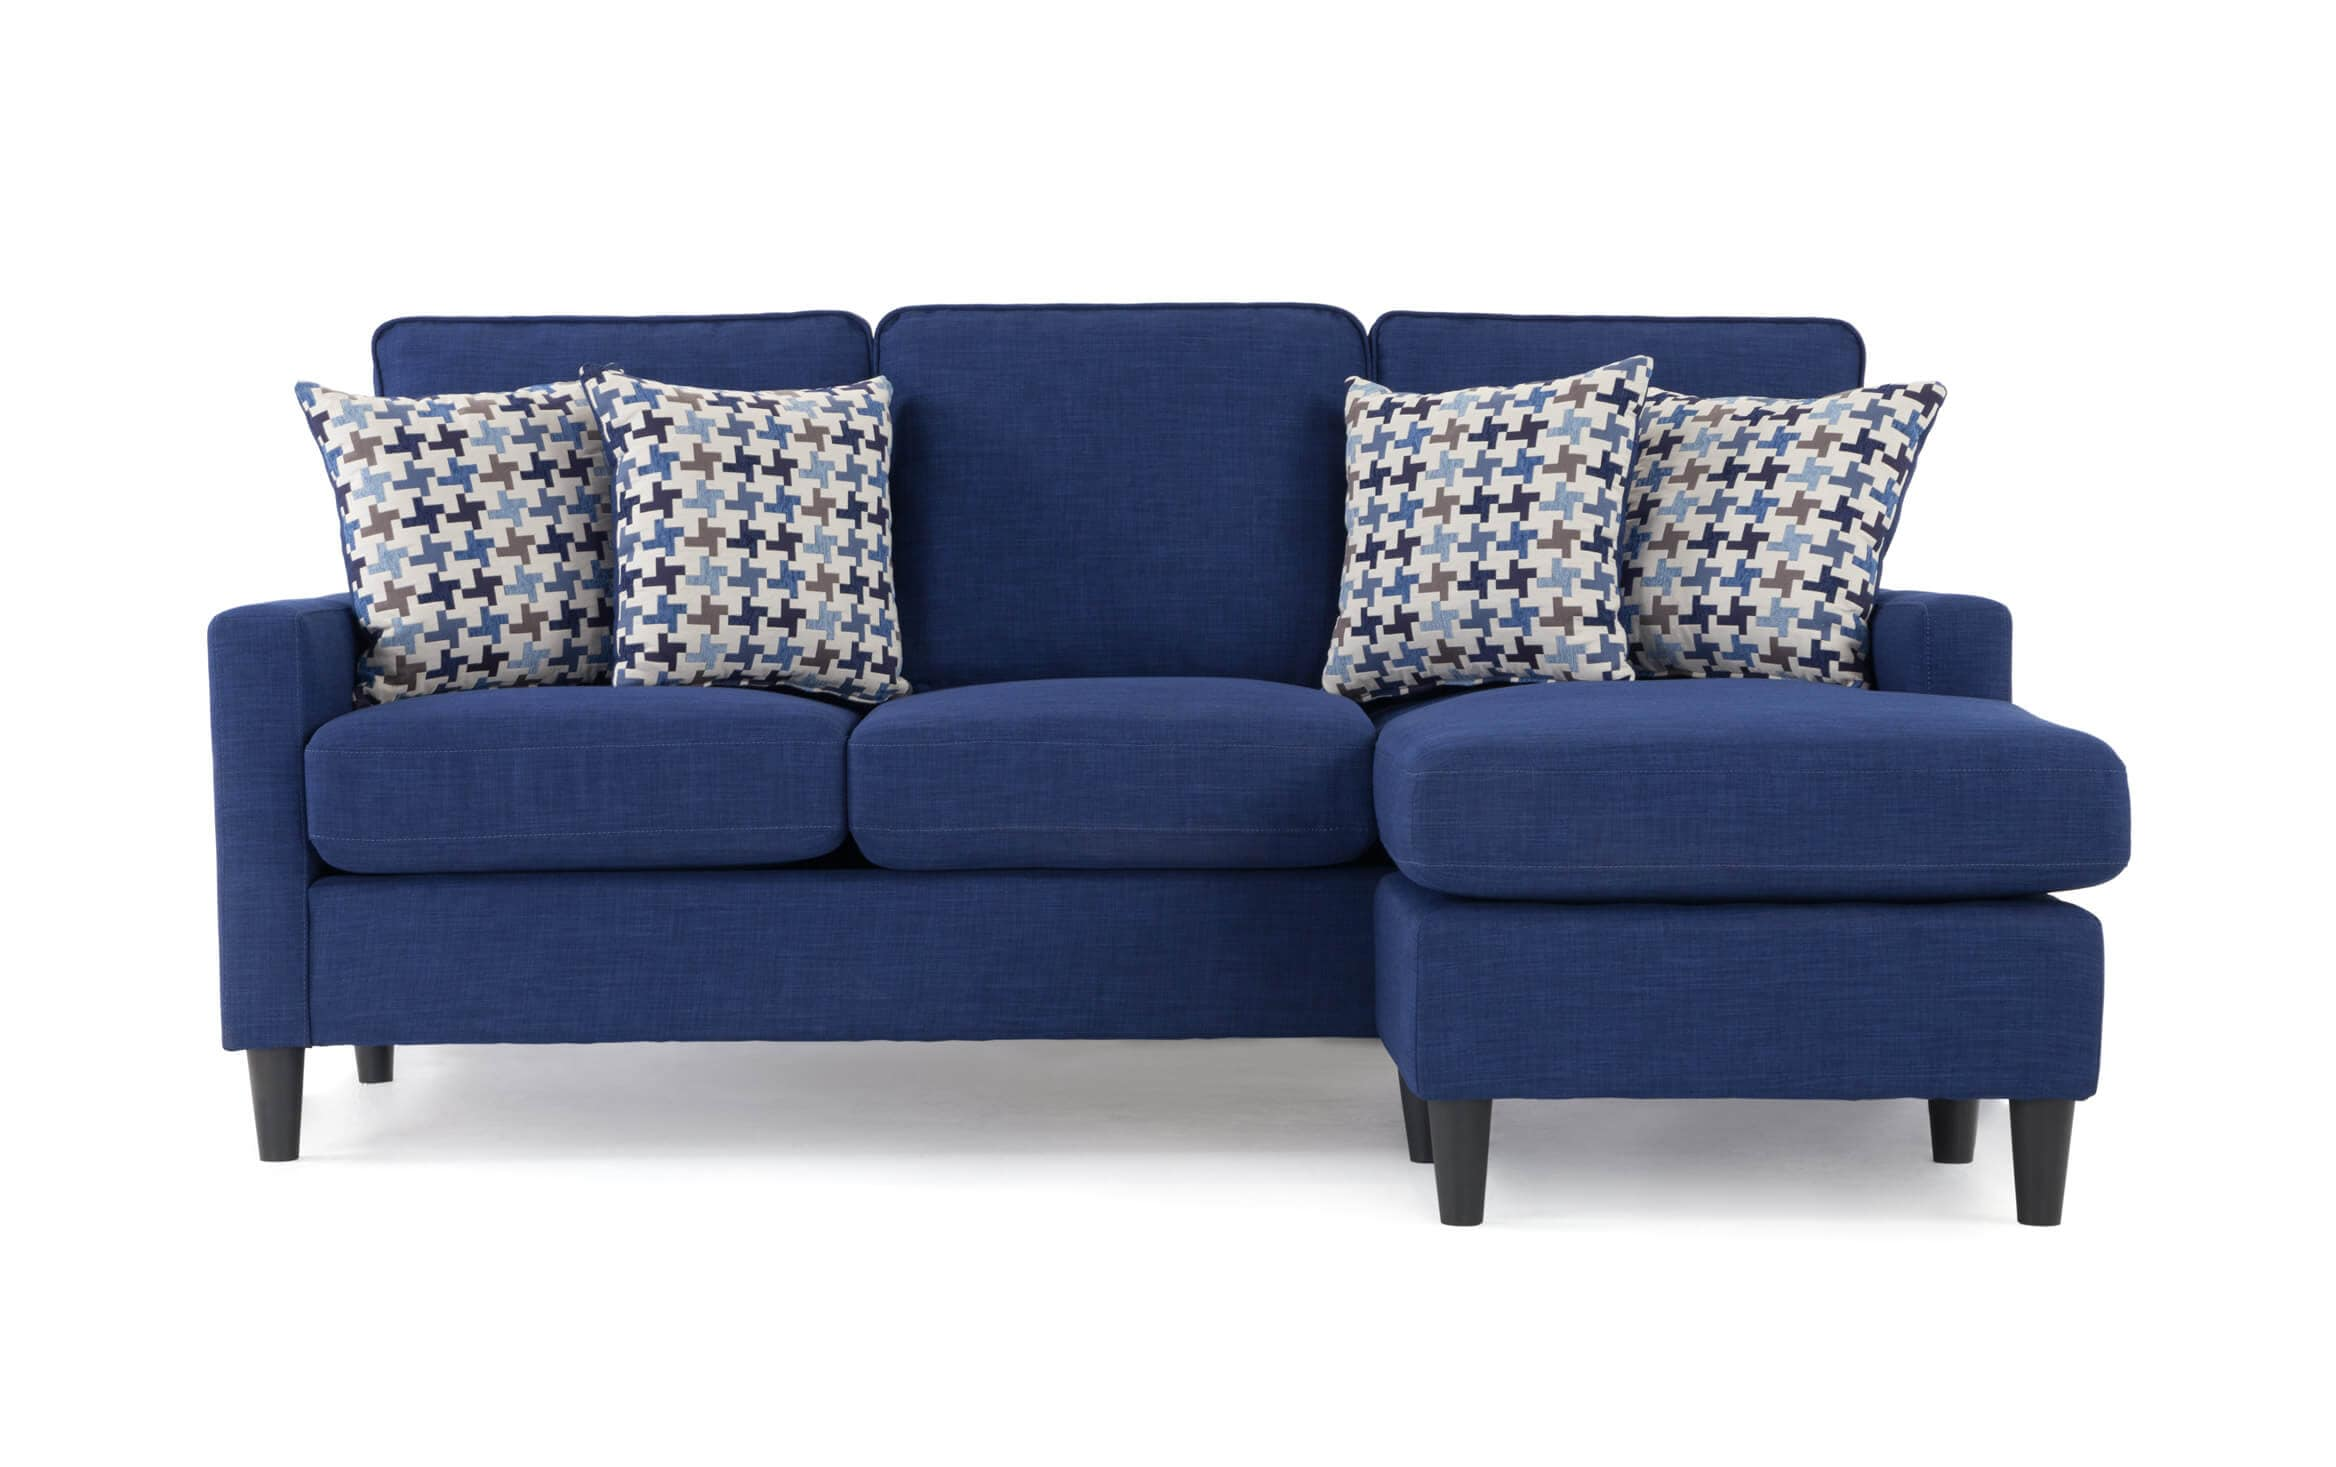 Fresno Blue Chofa Outlet Bob S Discount Furniture